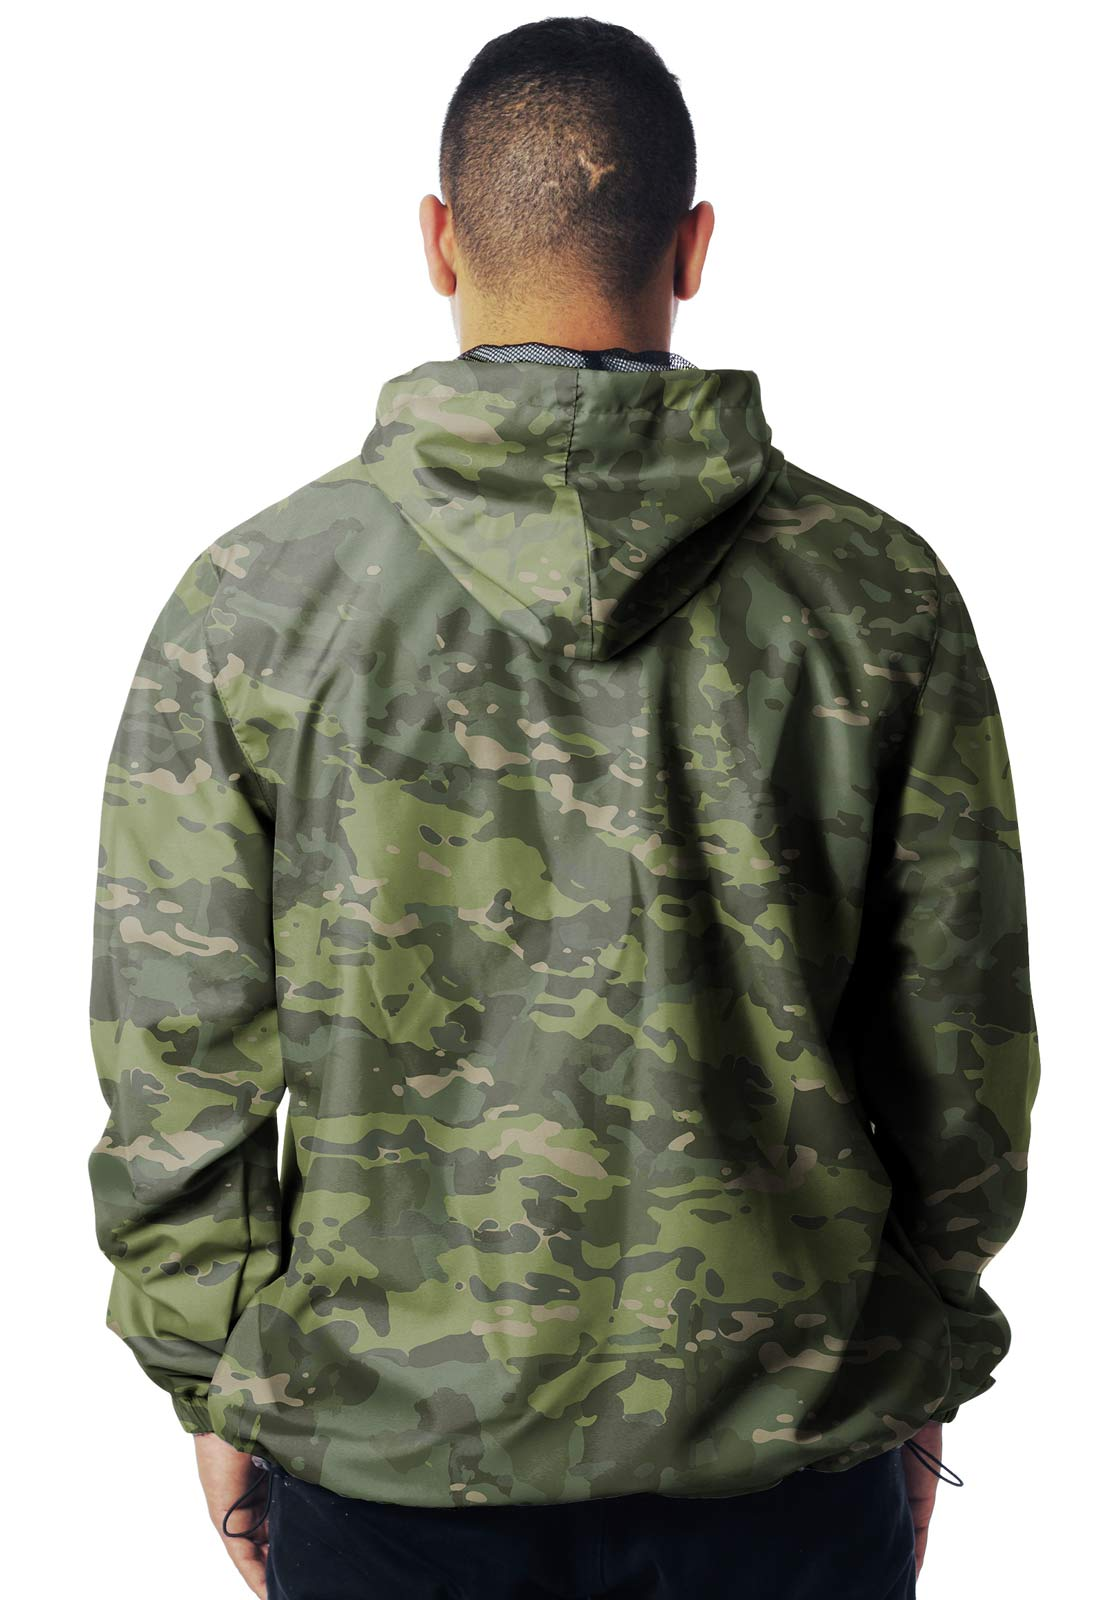 JAQUETA CORTA VENTO CAMUFLADA MULTICAM TROPICAL MASCULINA  - REAL HUNTER OUTDOORS